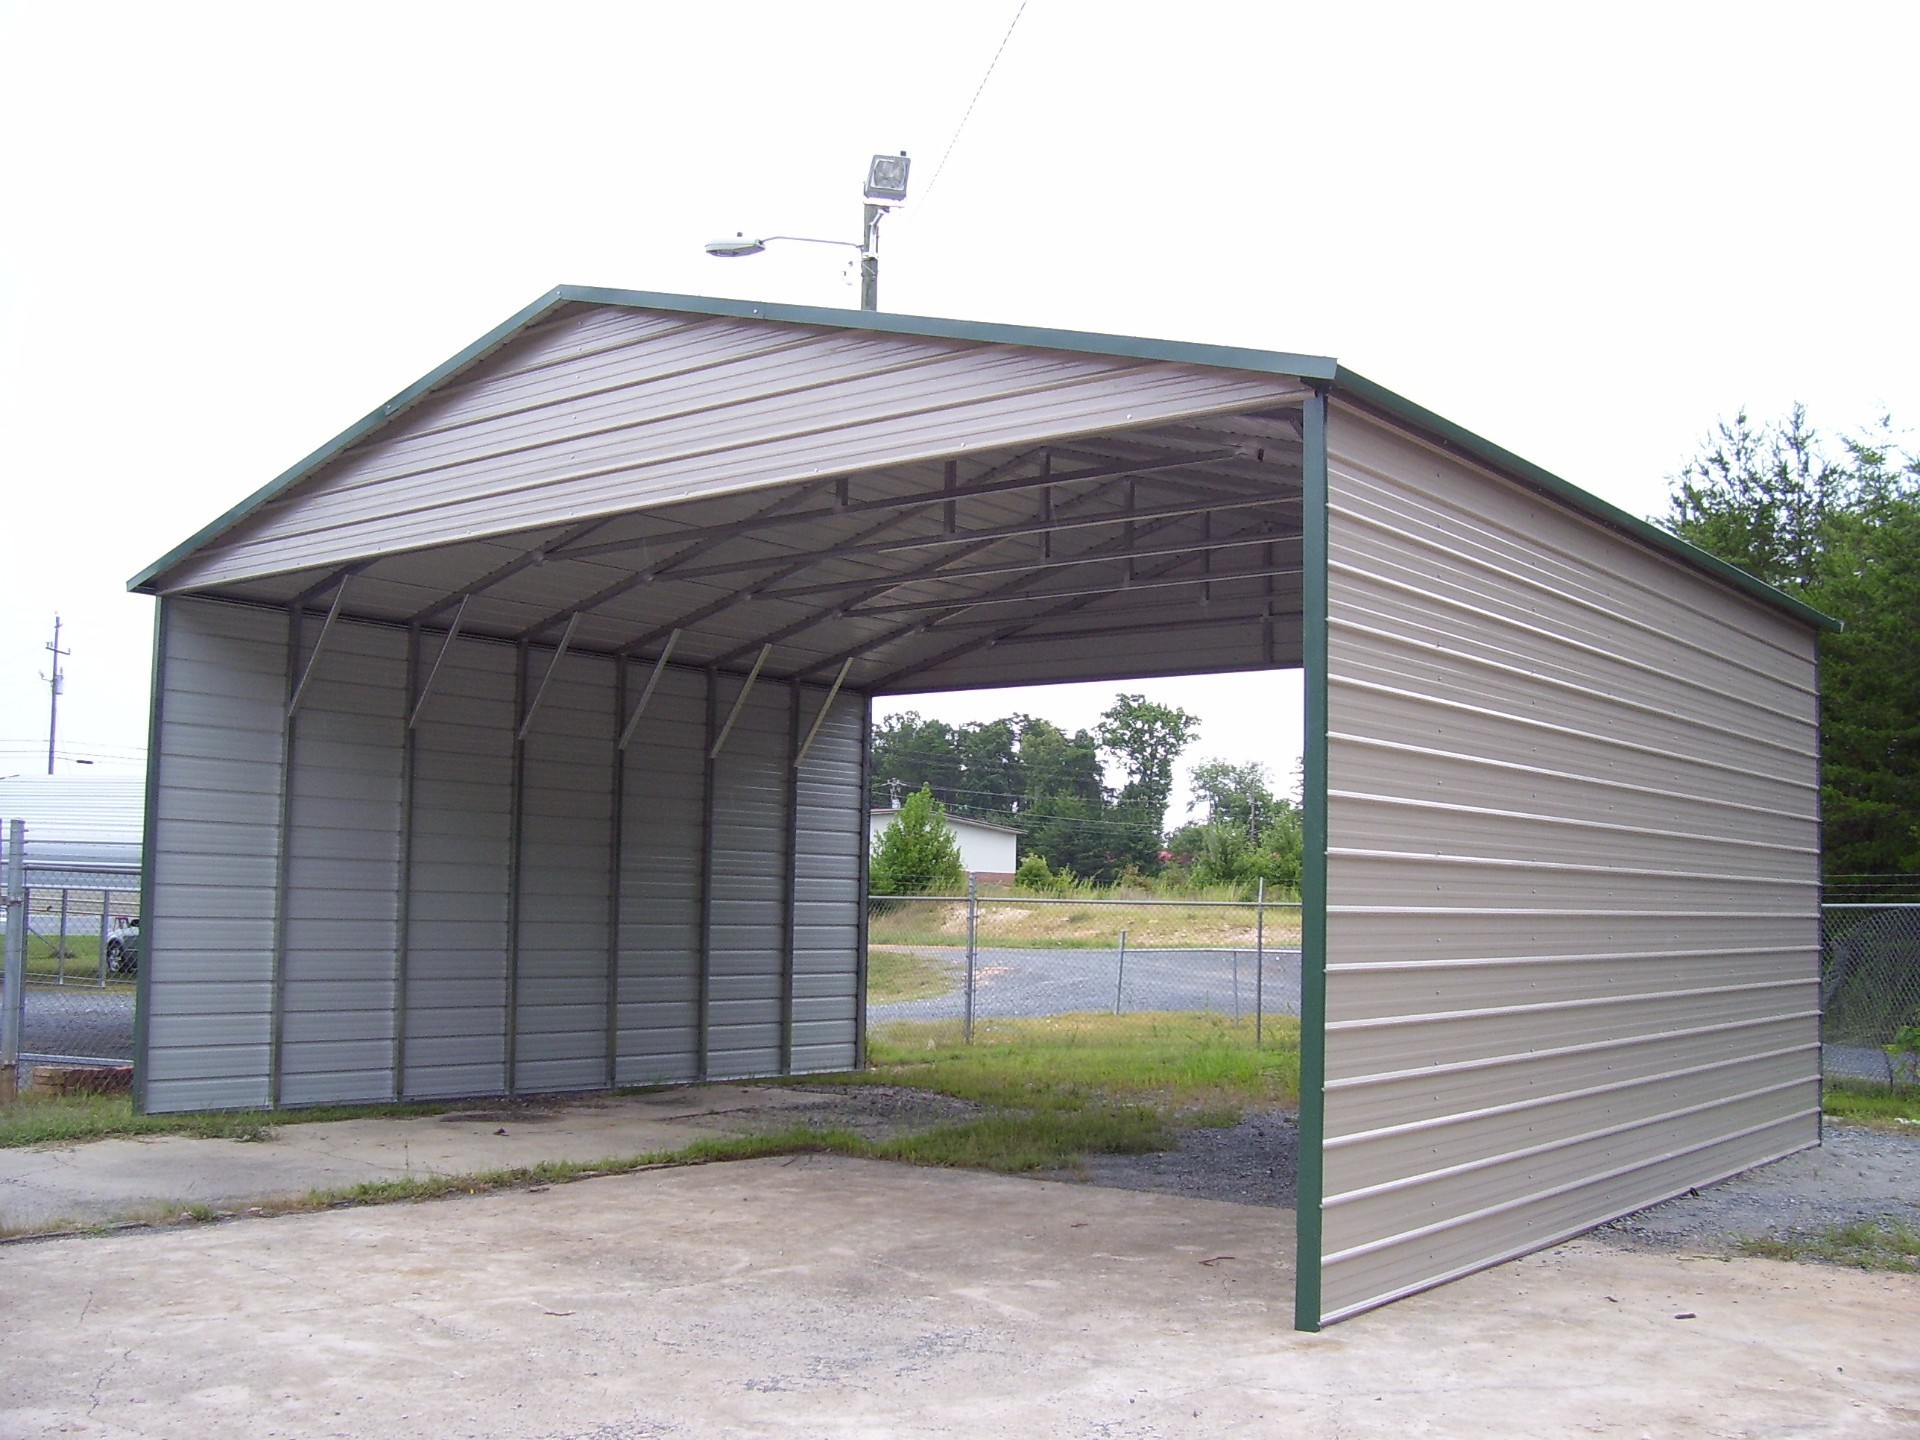 Louisiana Carports | Metal Carports LA | Buy Louisiana ...